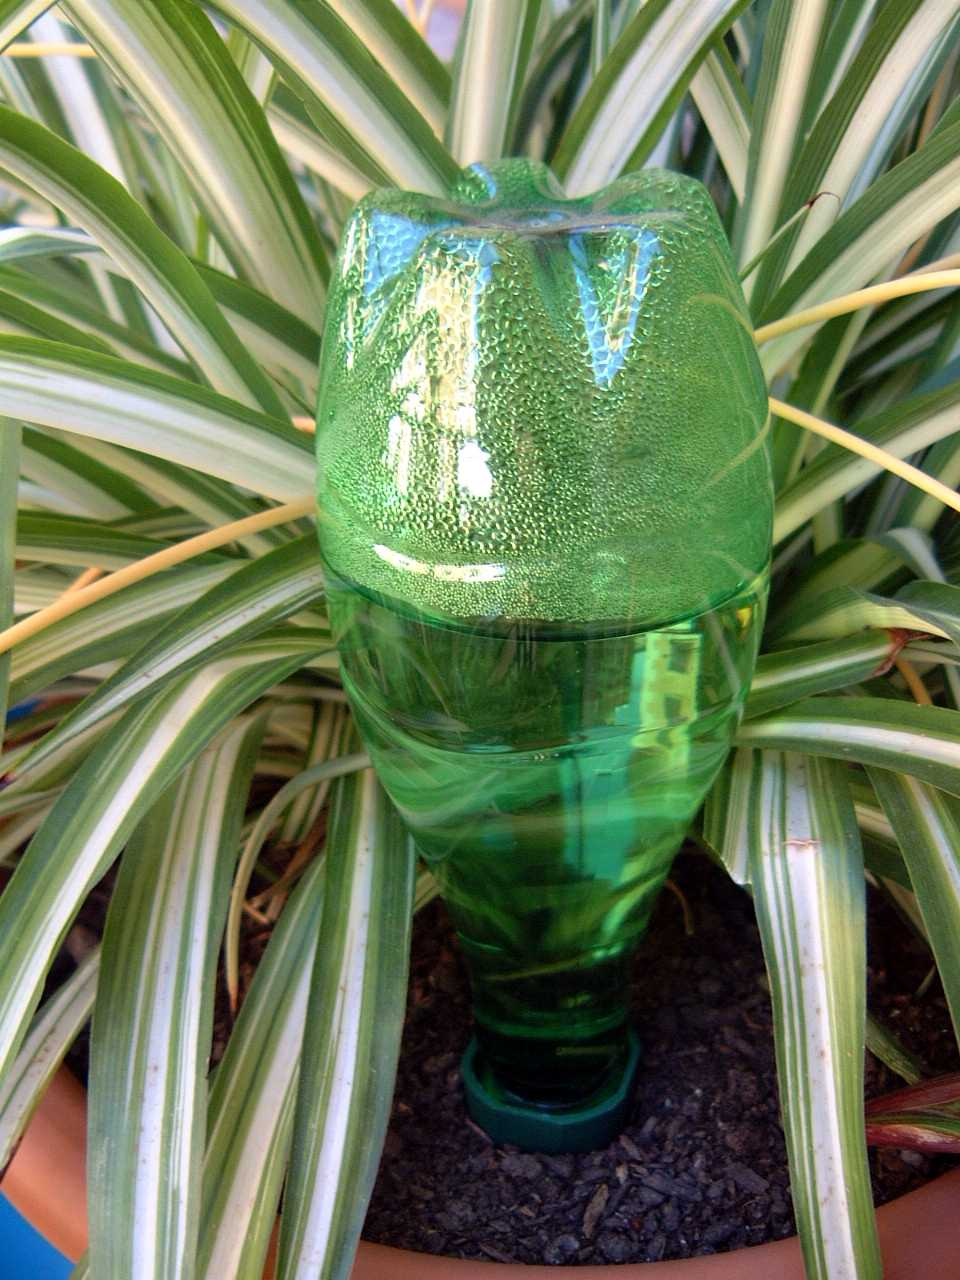 Watering spike in container with recycled plastic bottle